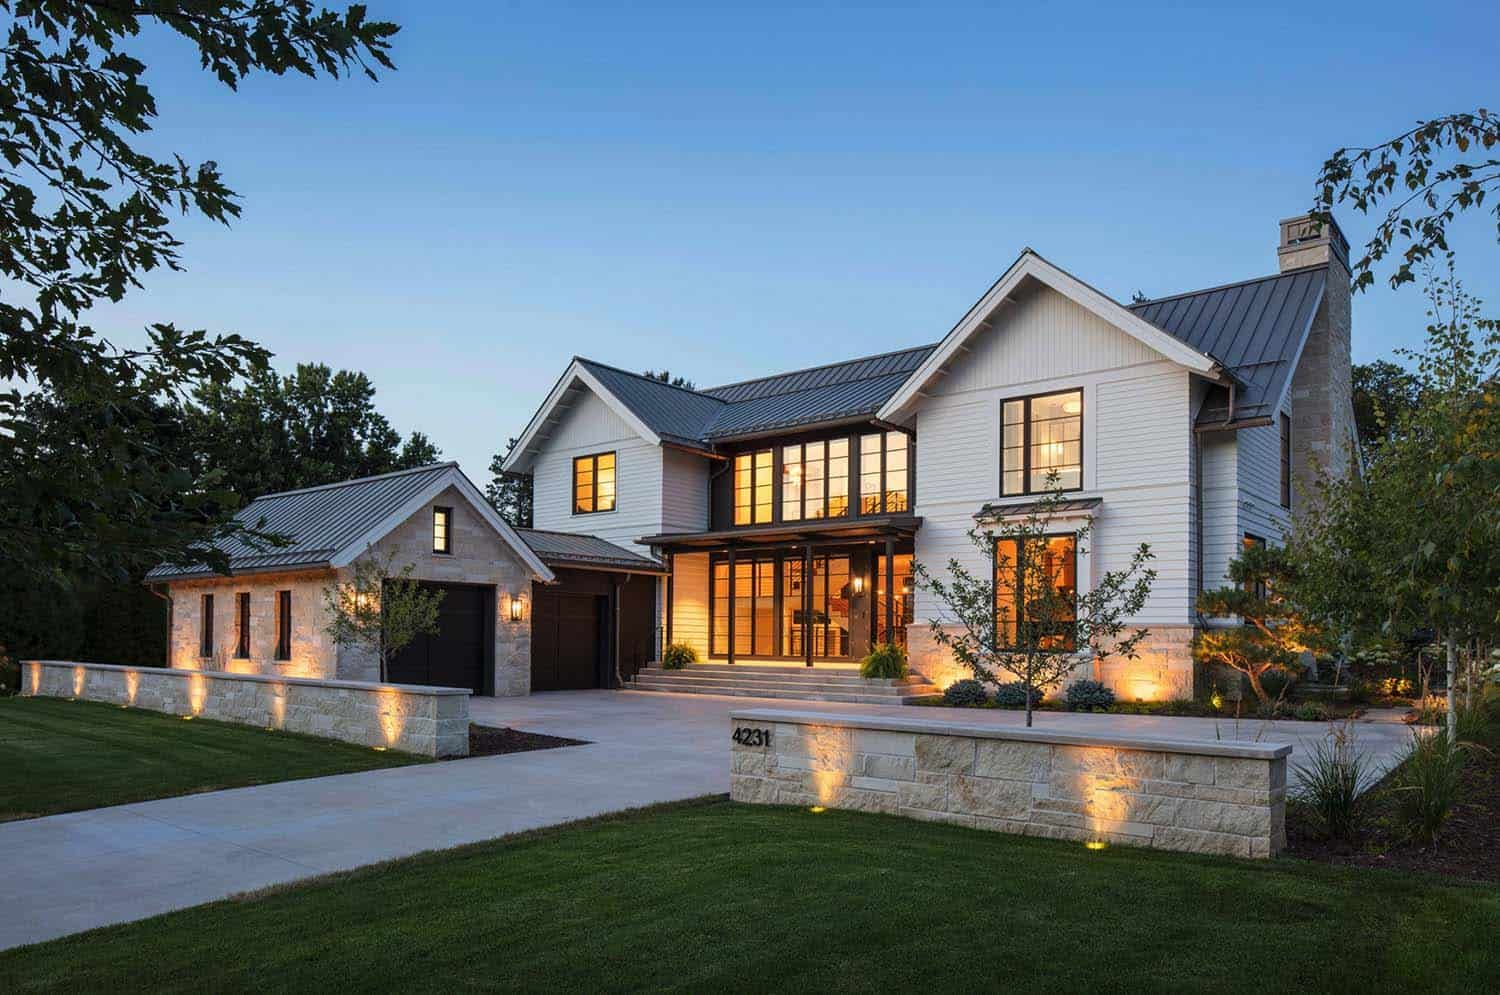 Fabulous modern farmhouse with delightful details